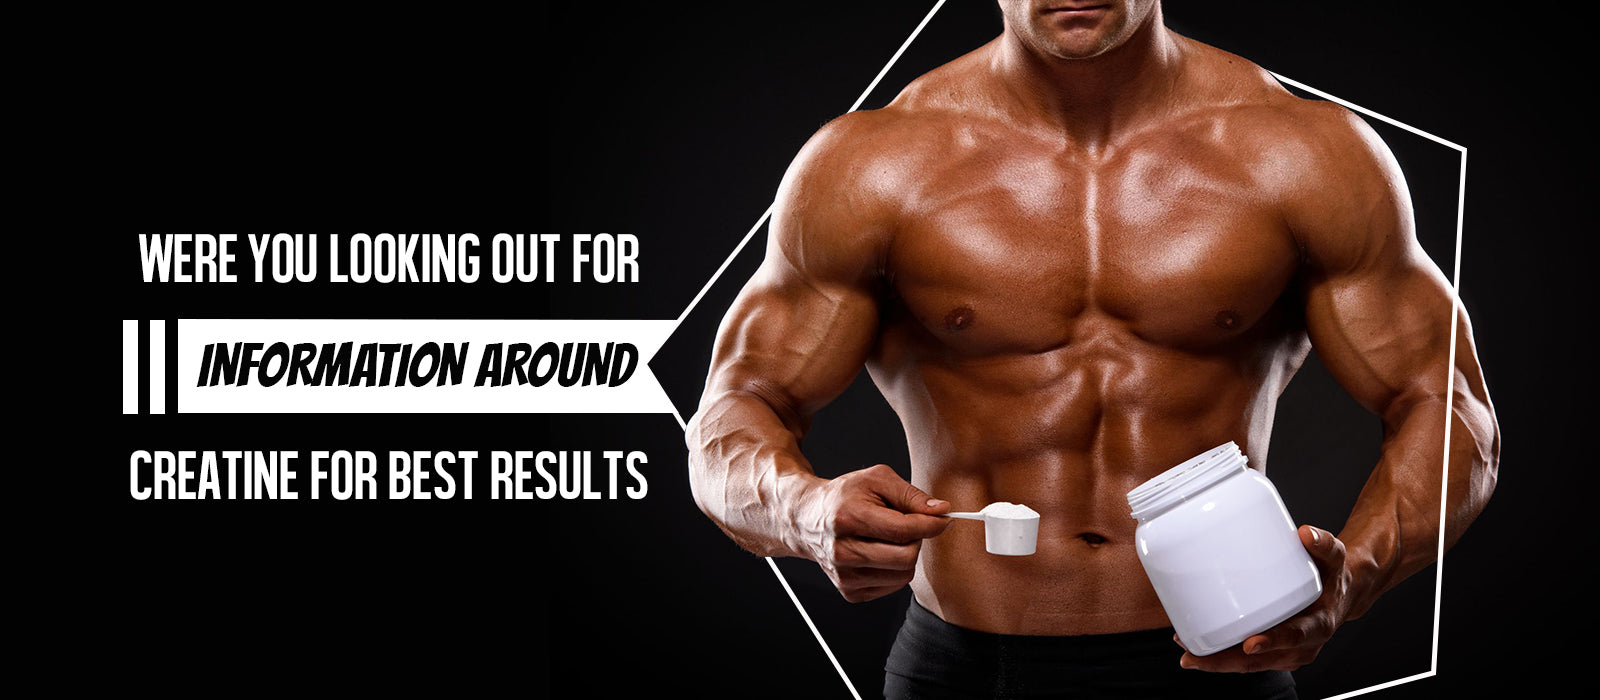 Were You Looking Out For Information Around Creatine For Best Results